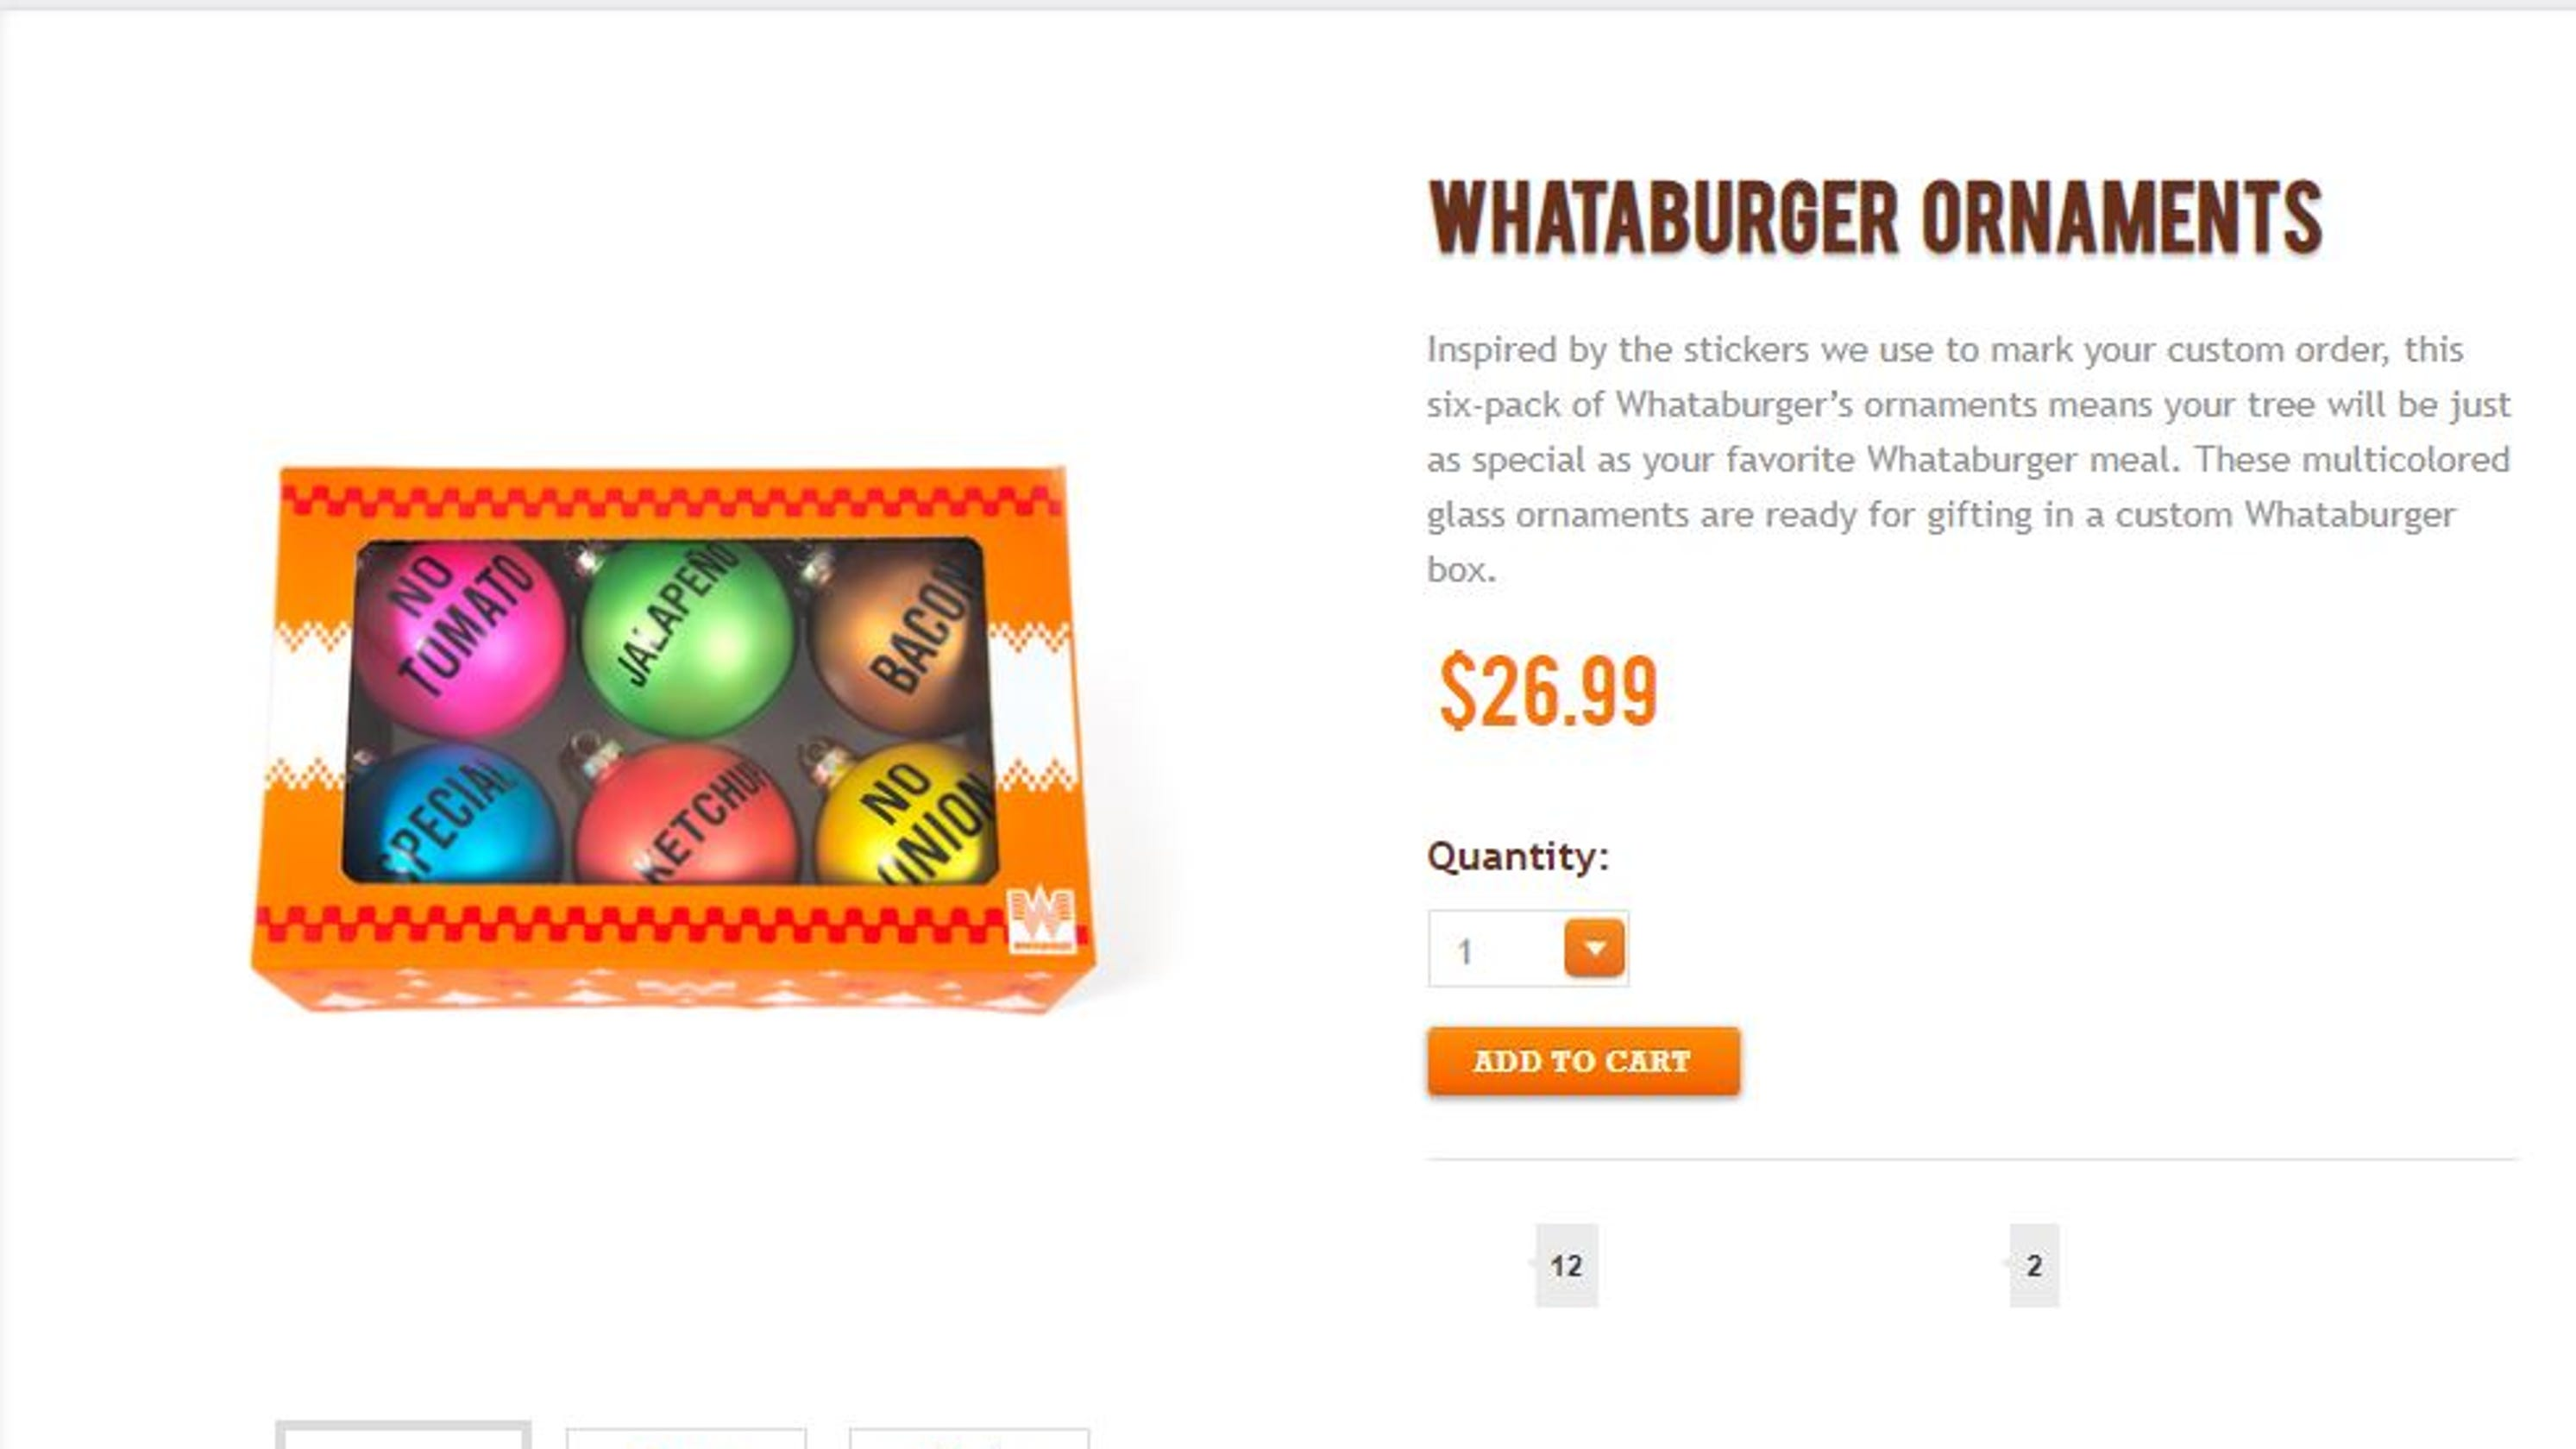 These are perfect gifts for Whataburger fans